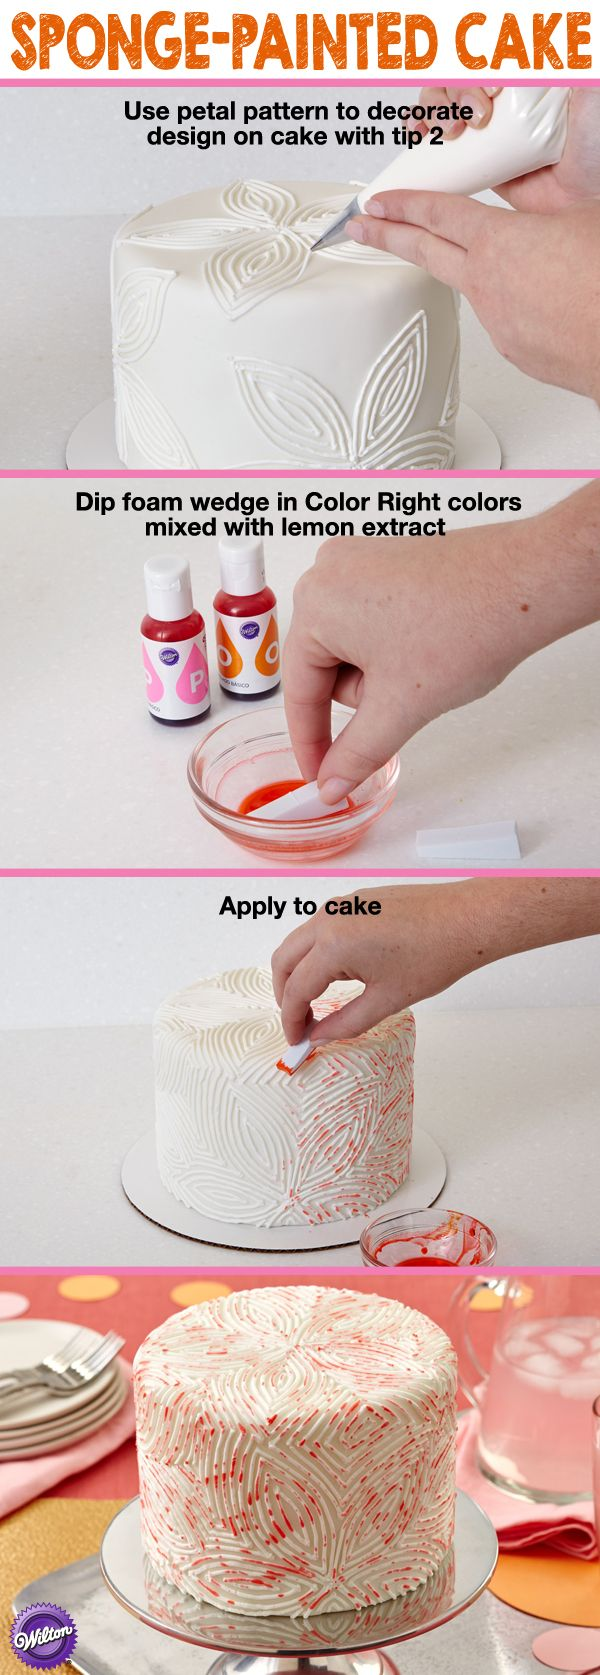 Cake Decorating Painting Icing : Best Fondant Christmas Cake ideas on Pinterest Christmas ...